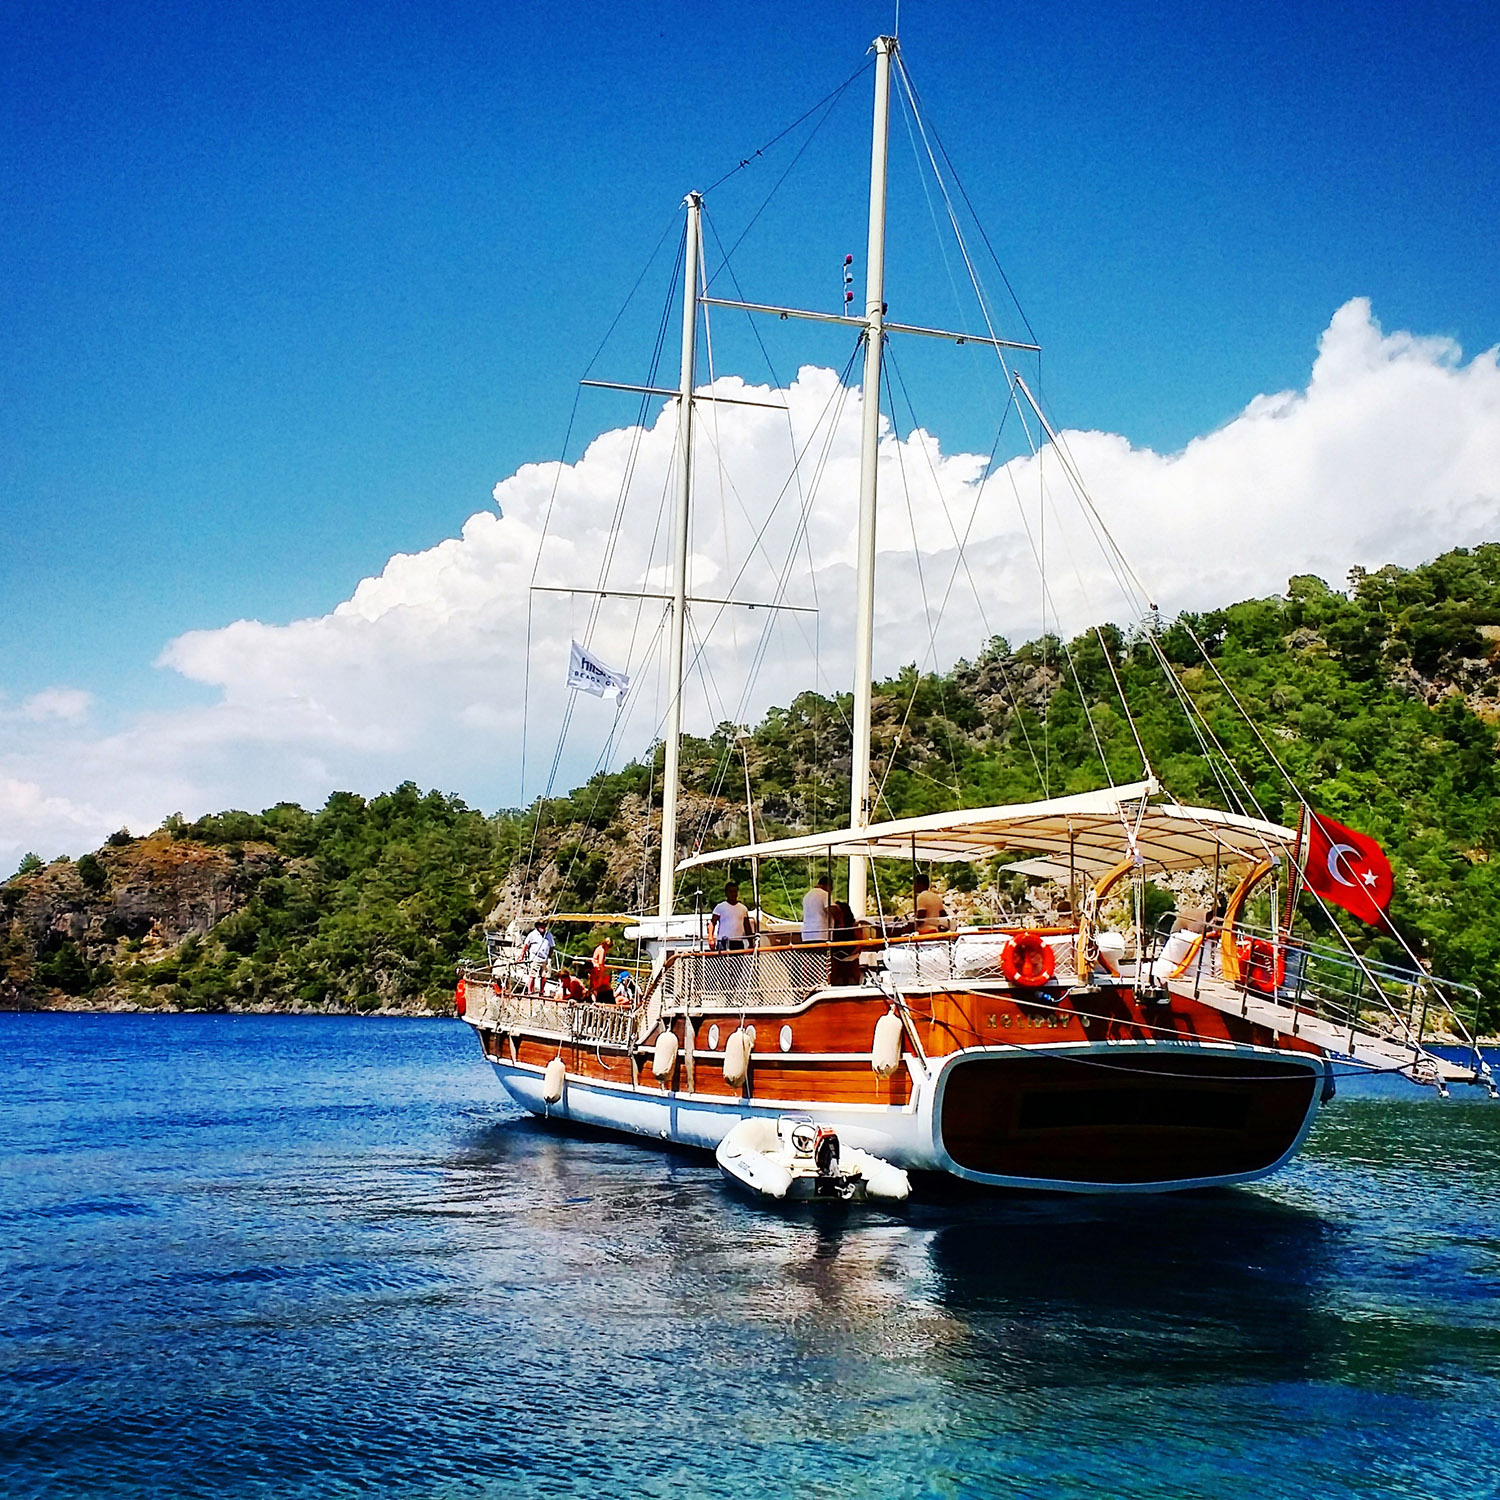 12 Islands Sailing Boat Trip,Light Tours Daily Tours, Discount Tours, Package Tours 418